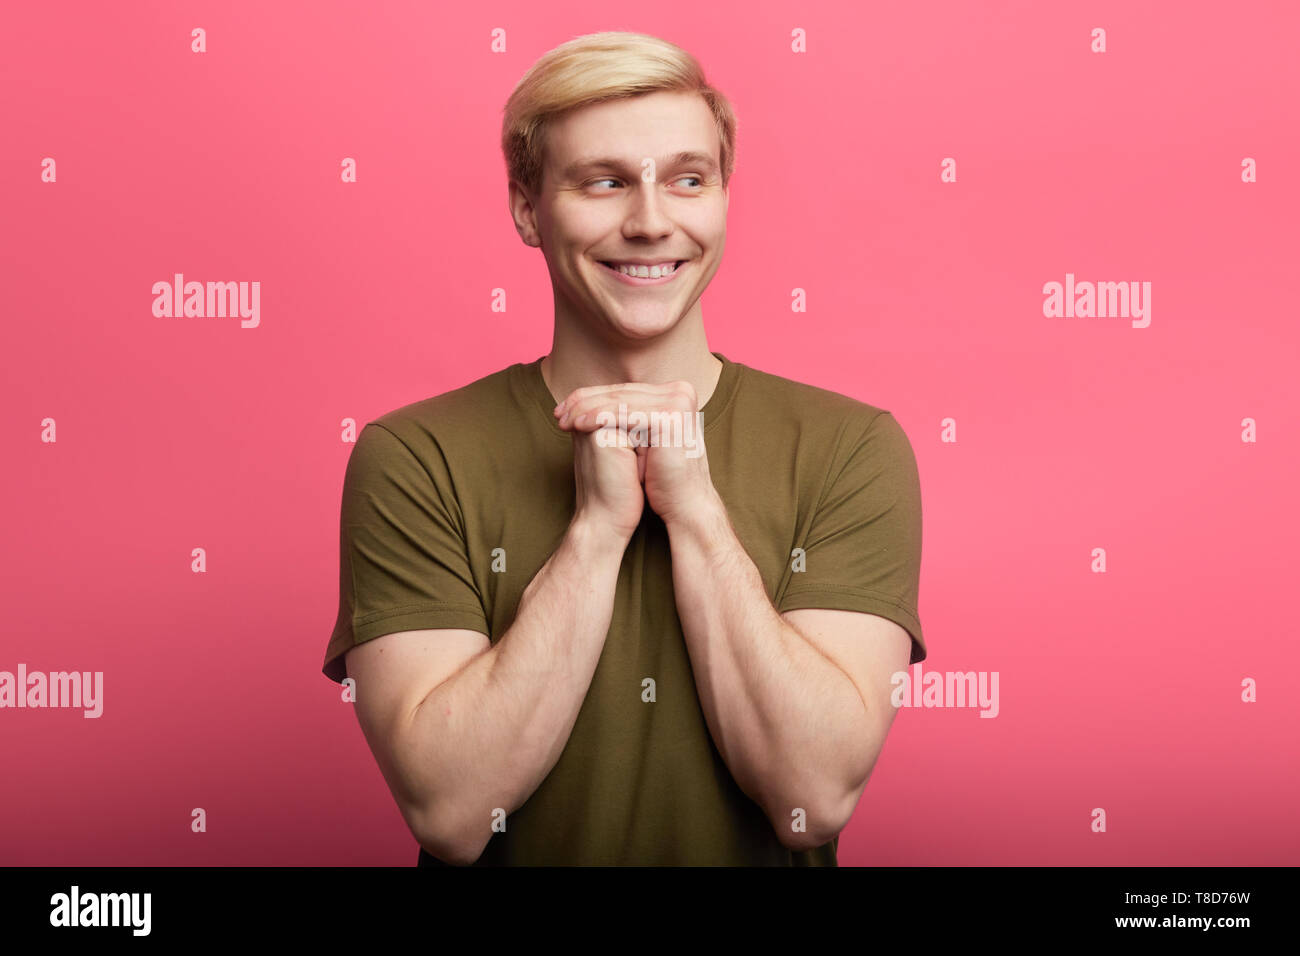 Cunning tricky smiling man standing with hand together , looking aside, over pink background. unfair game,interesting idea, plan for revenge - Stock Image